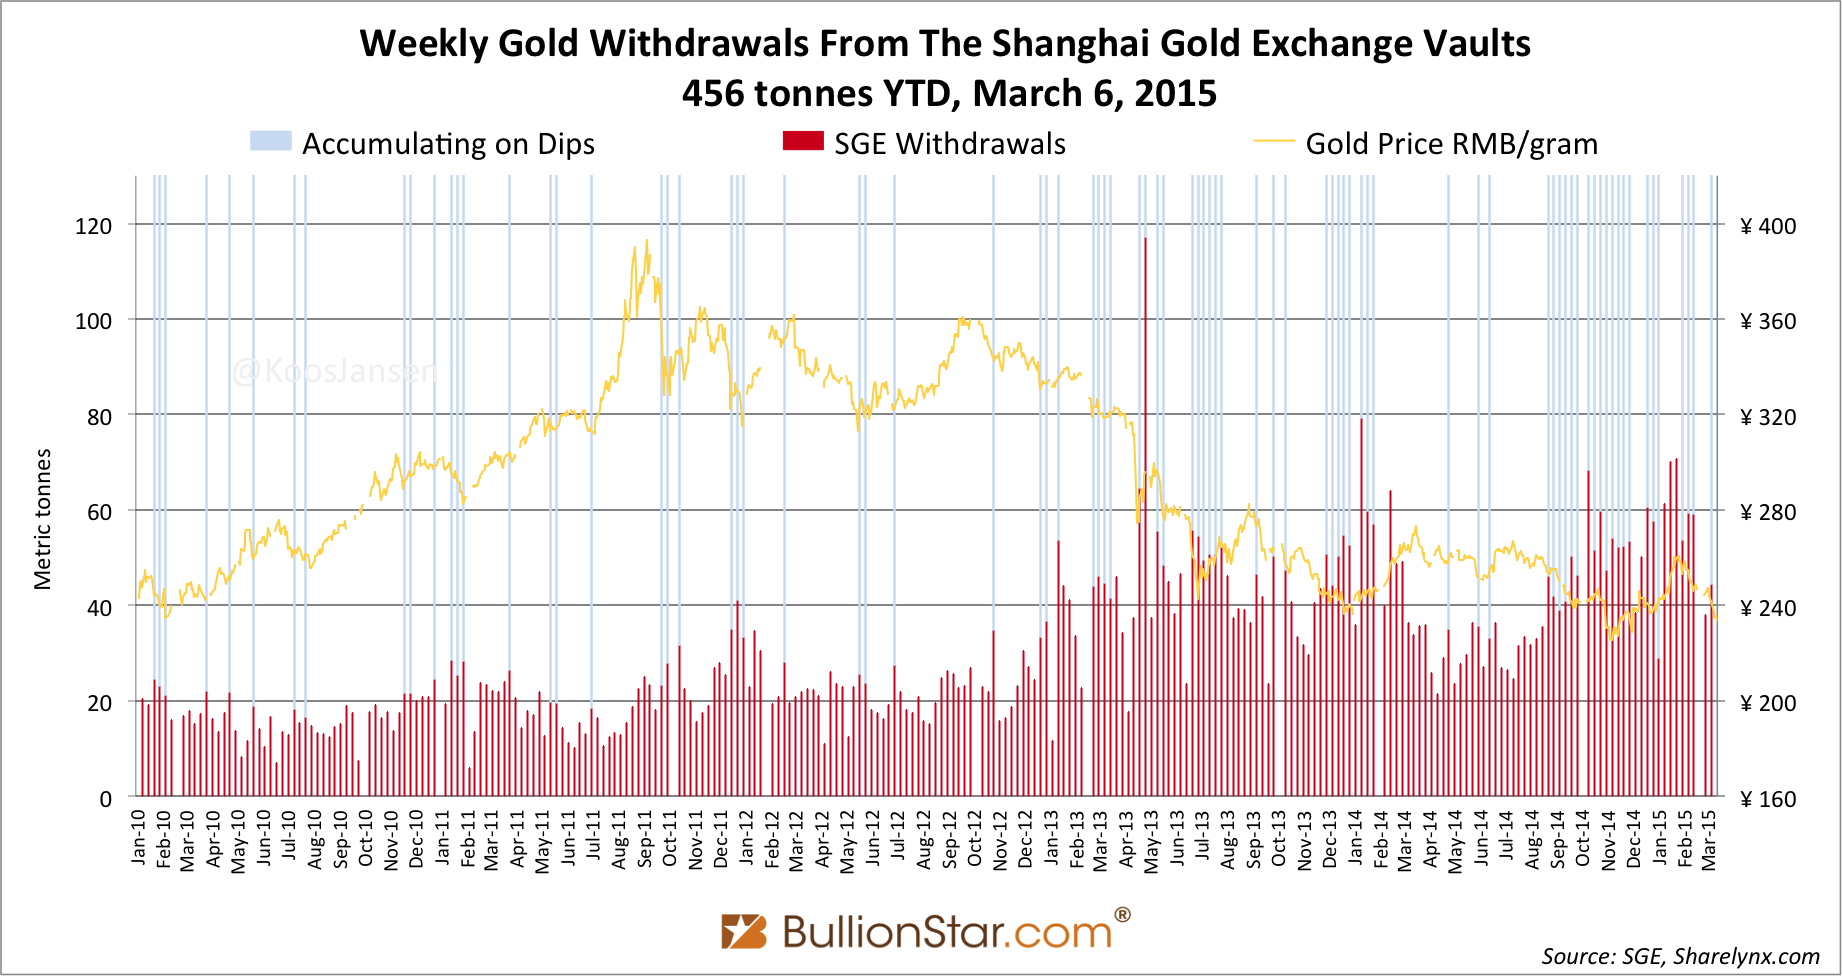 Shanghai Gold Exchange SGE withdrawals delivery 2015 week 9 dips